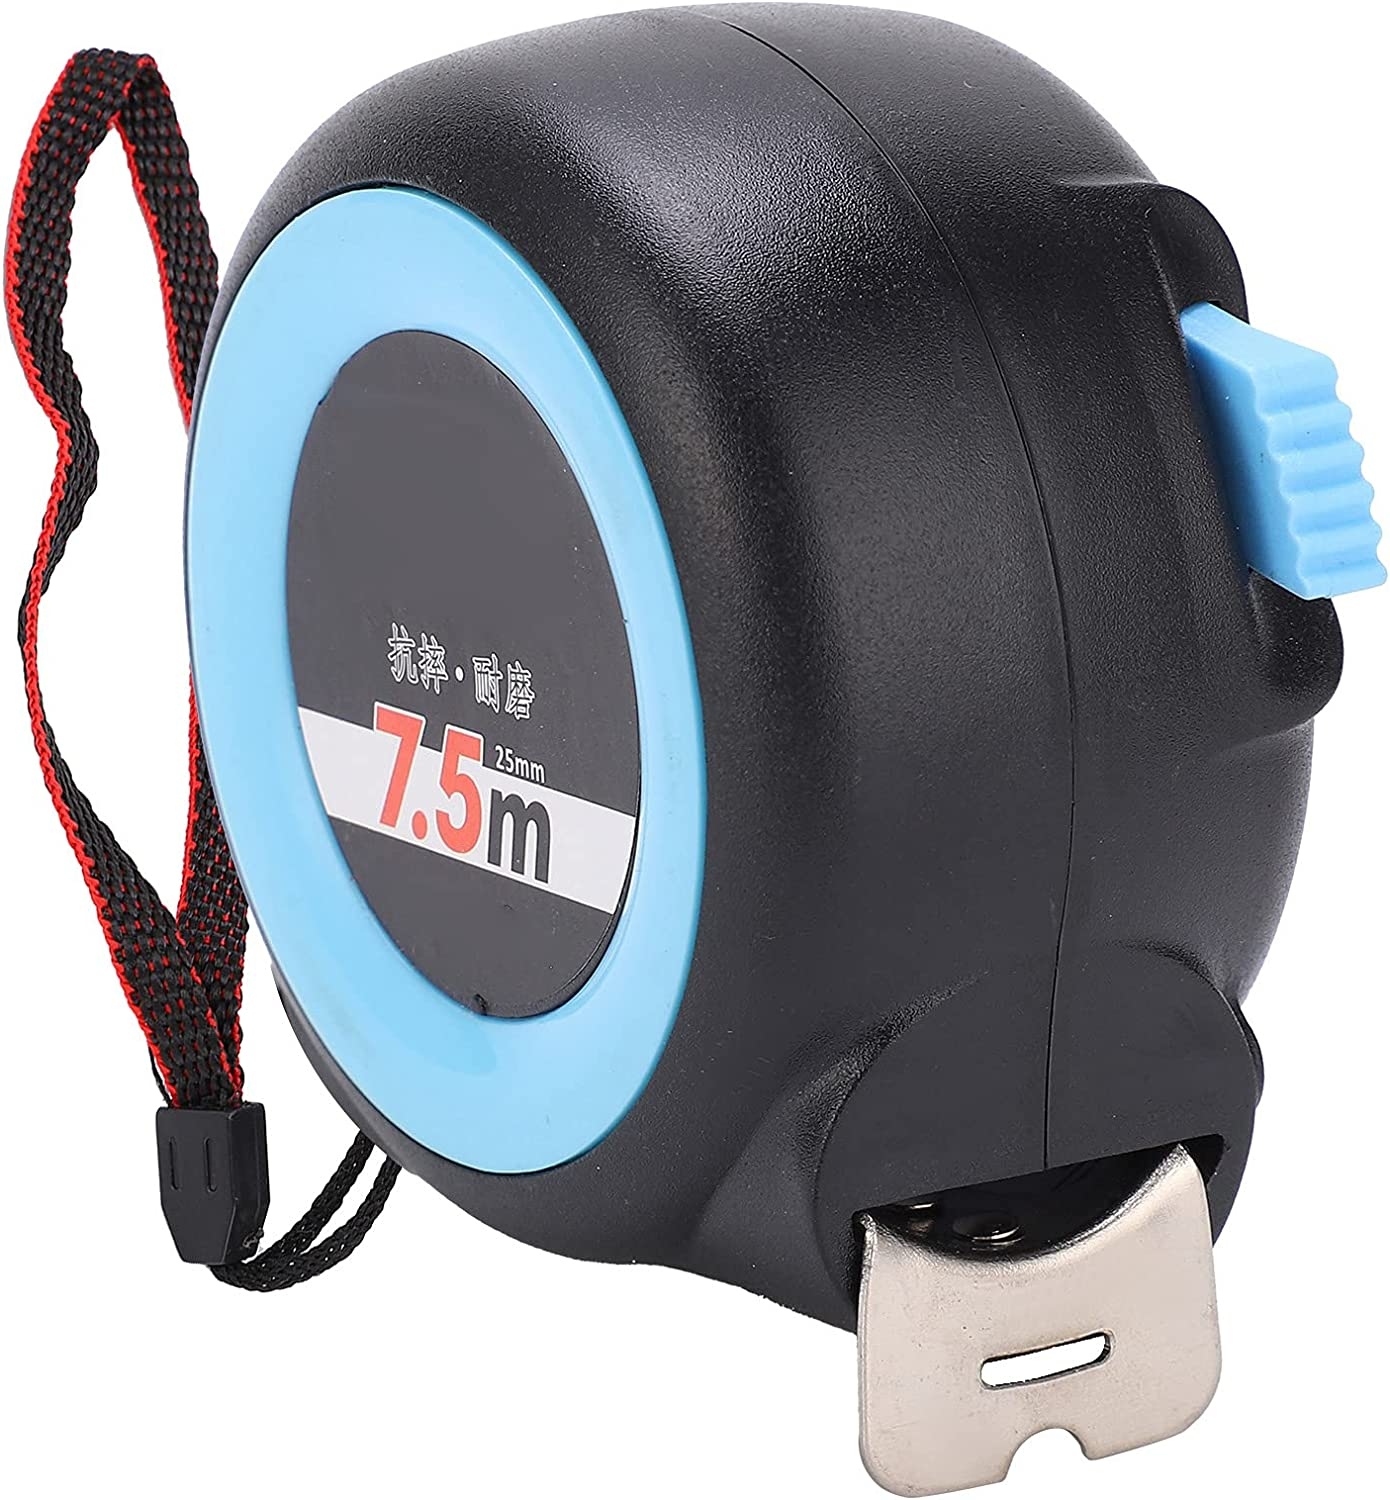 YIUS Max 49% OFF Tape Measure Steel Blade Upgrade Thicker Fro Self‑Locking Same day shipping